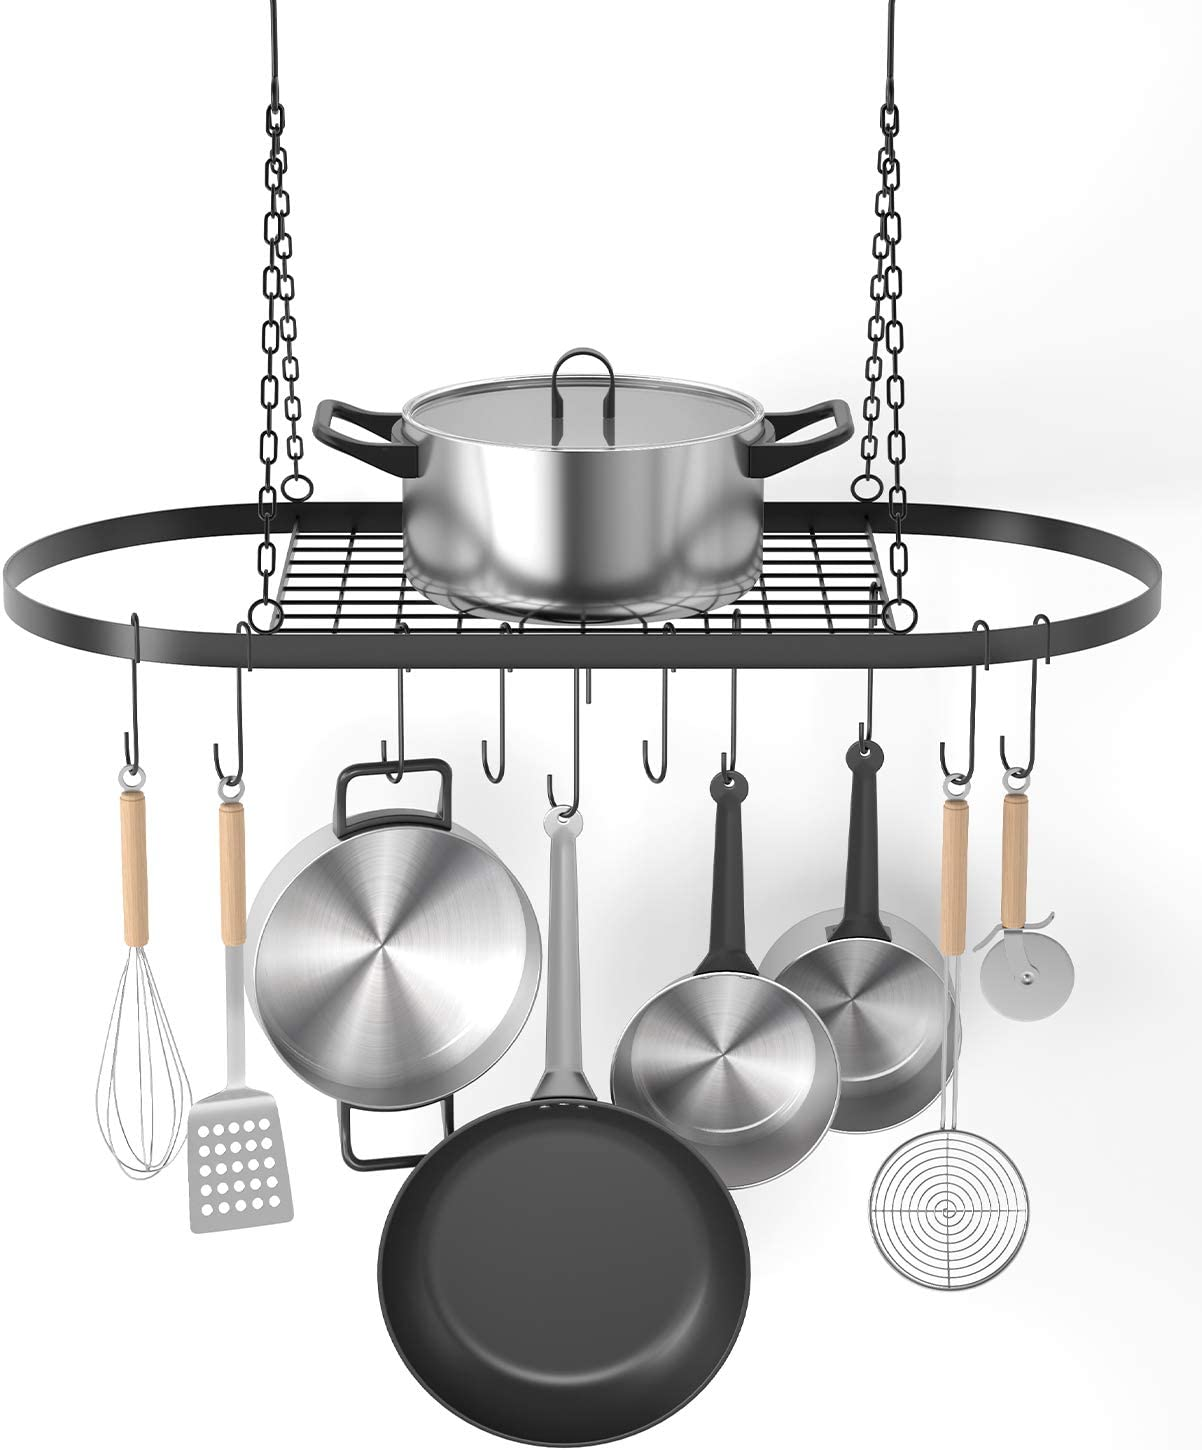 """X Home Pot and Pan Rack for Ceiling with Hooks, Decorative Oval Mounted Storage Rack, Multi-Purpose Hanging Hanger Organizer for Home, Restaurant, Kitchen Cookware, Utensils, Books, 32"""" X 16.5"""""""